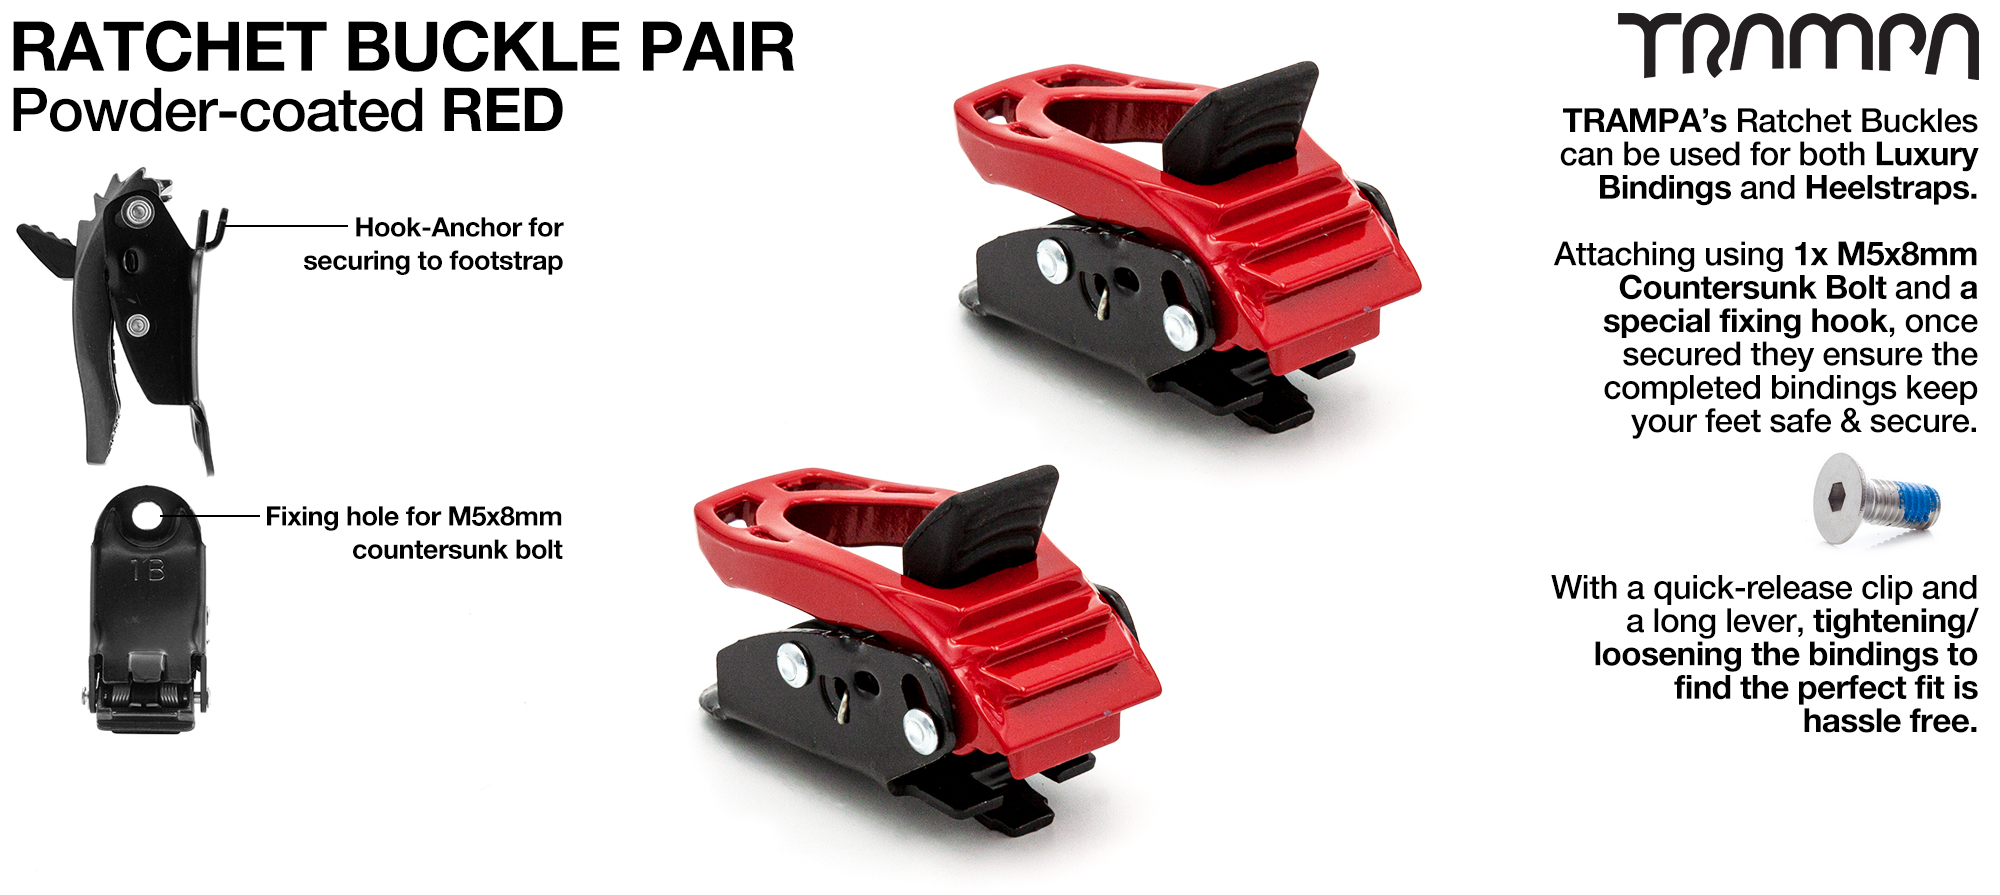 Red Powder Coated Ratchet Buckles x 2